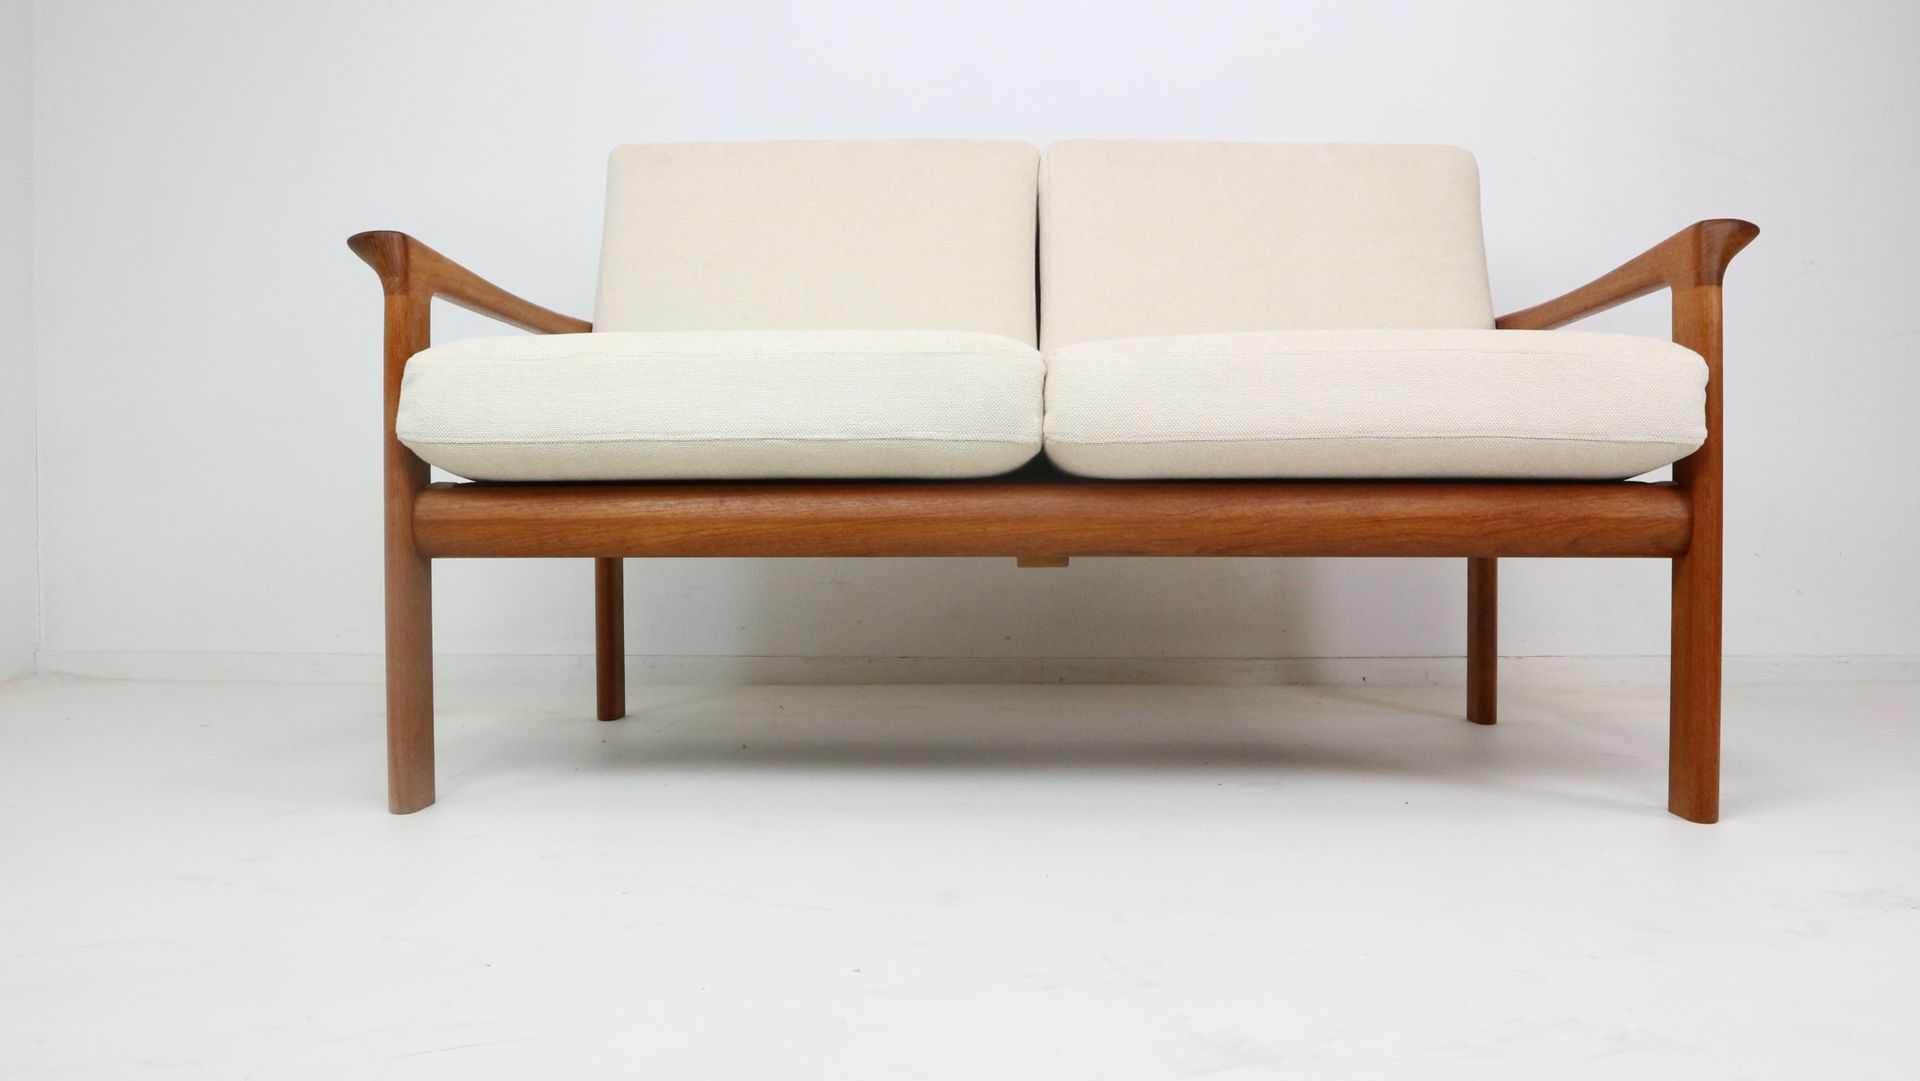 Borneo two seat sofa by sven ellekaer for komfort 1960s for sale at pamono Sofa bequem komfort